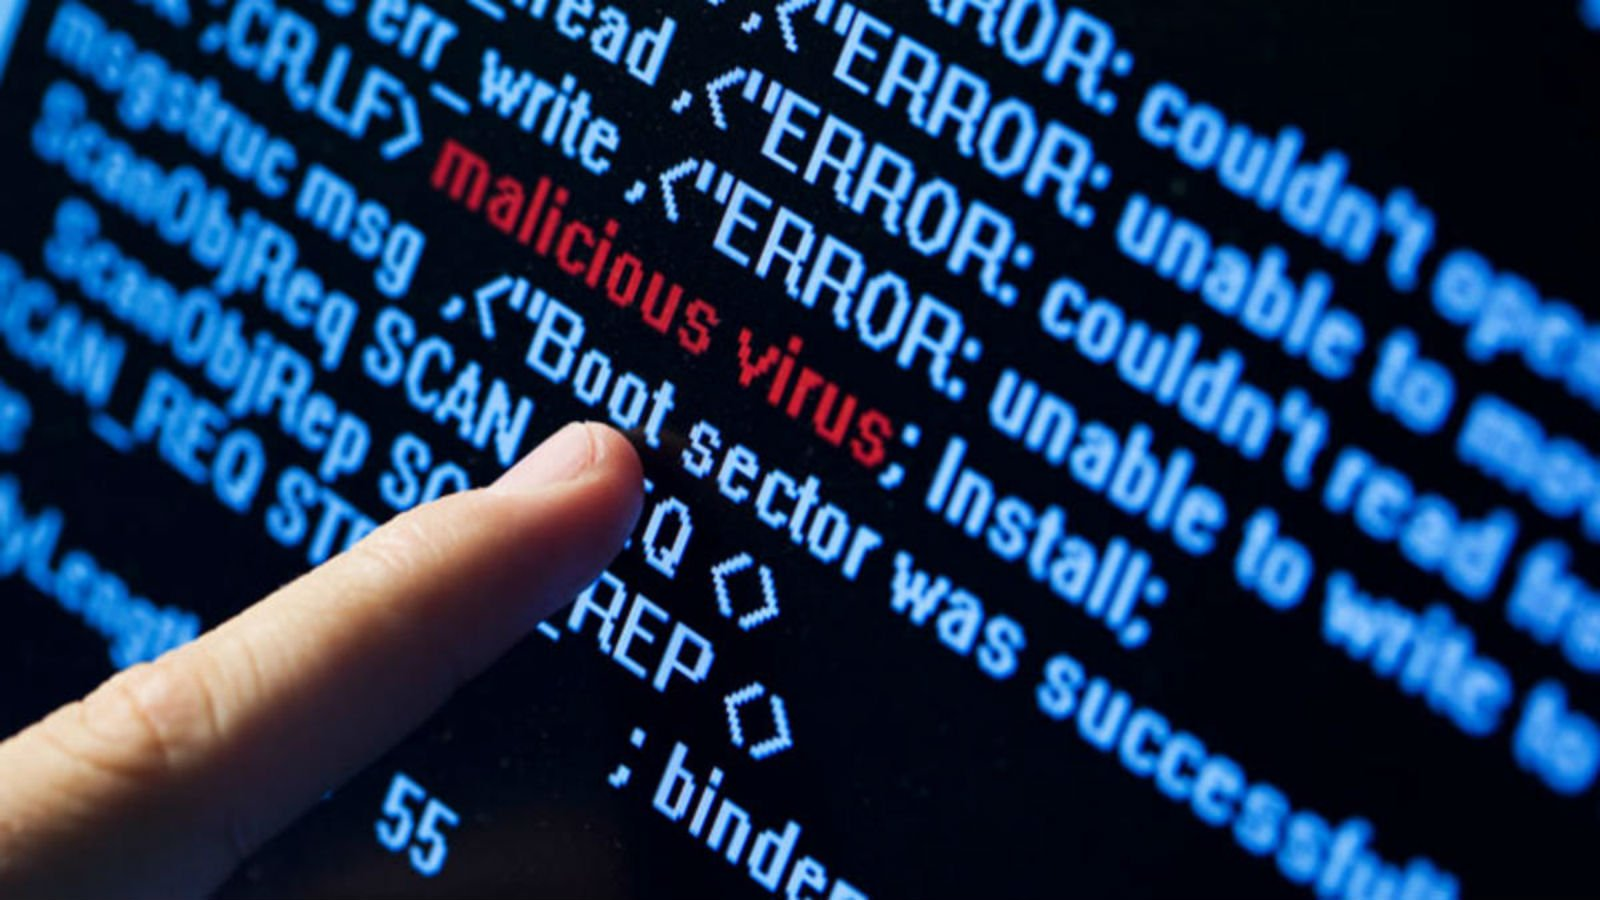 computer virus danger hacking hacker internet sadic (4)